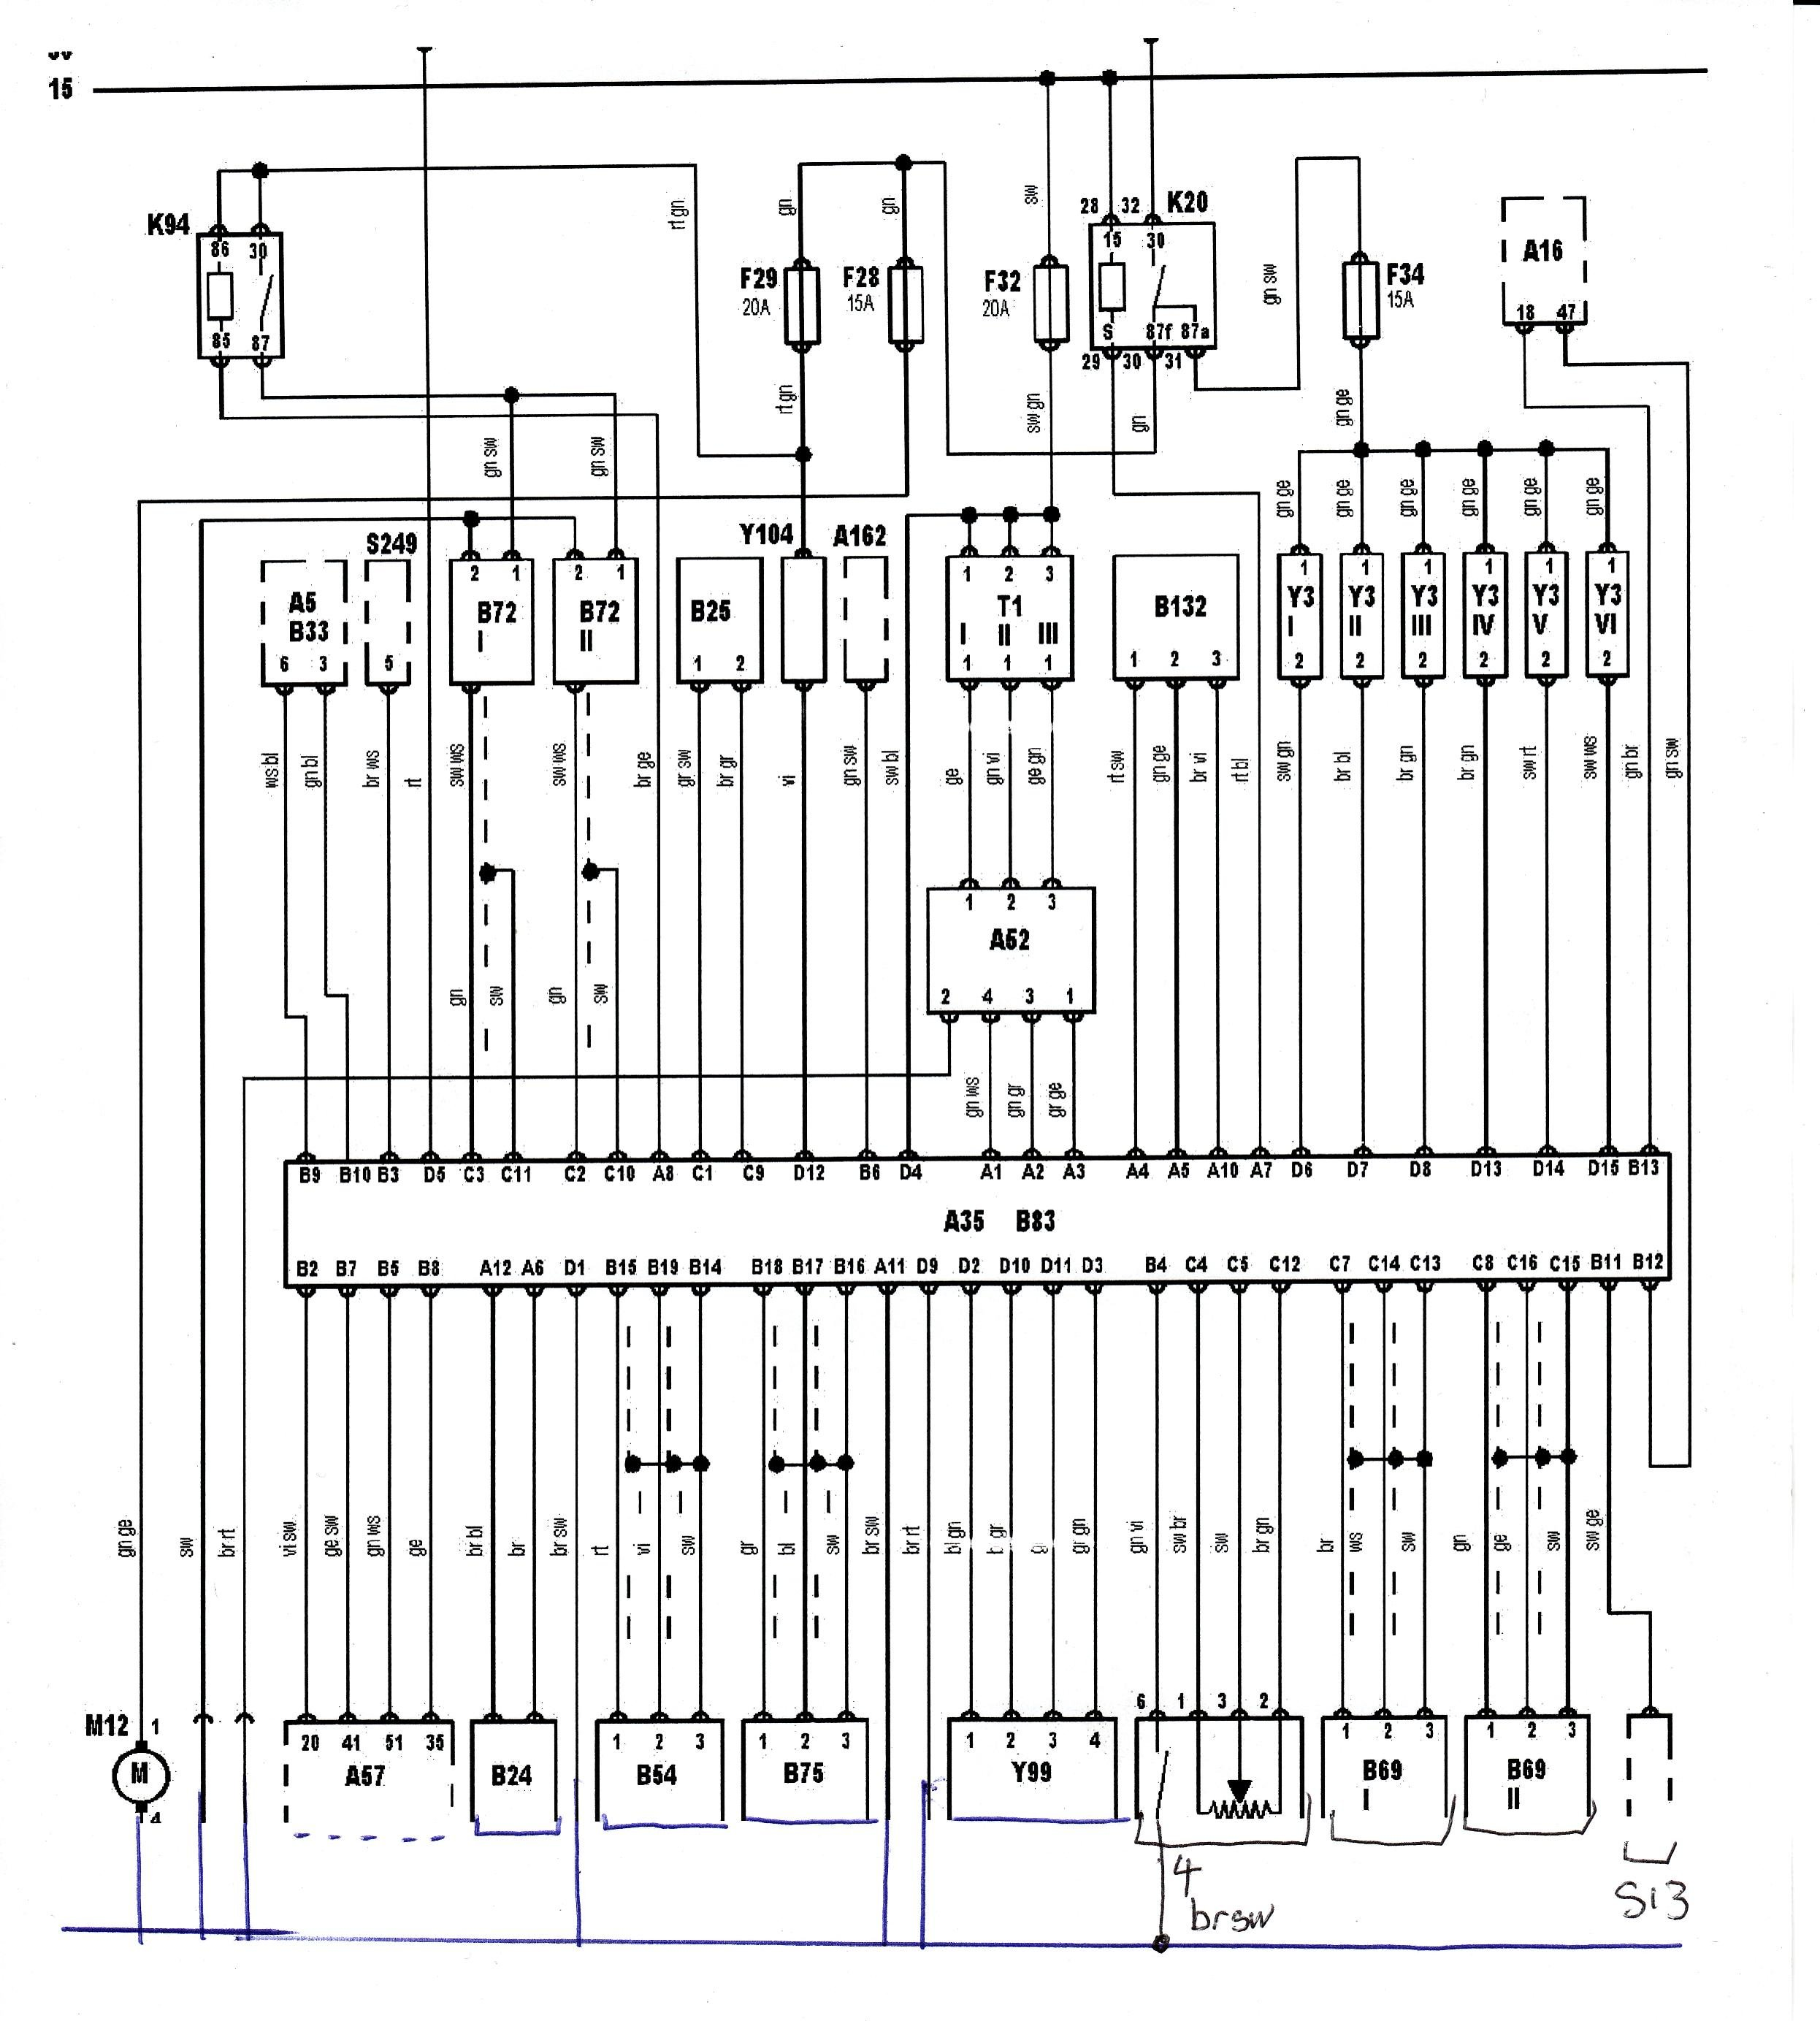 Diagram D16y8 Ecu Wiring Diagram Full Version Hd Quality Wiring Diagram Pvdiagramxbowes Ufficiestudi It